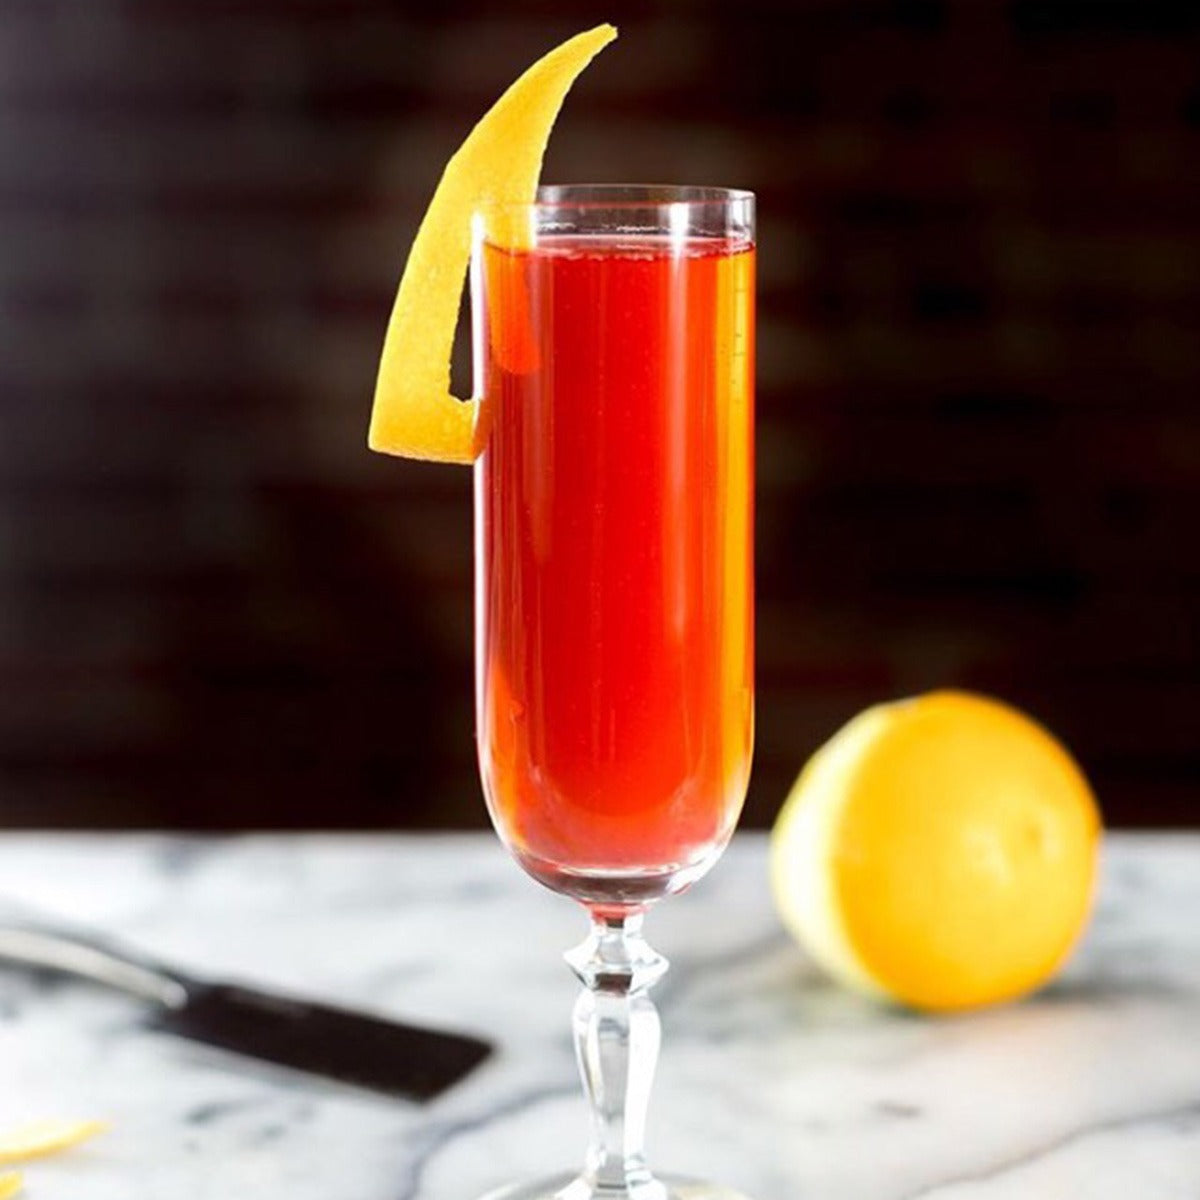 Blood Orange Vodka Spritz - Heritage Distilling on sprite punch, spring punch, monster punch, champagne punch, alcoholic punch, sparkling punch, fresh watermelon punch, recipes with sherbet punch, wedding punch, coffee punch, fruit punch, cranberry punch, tea punch, red punch, rum punch, jack daniel's punch, party punch, orange punch, southern comfort punch, ginger ale punch,